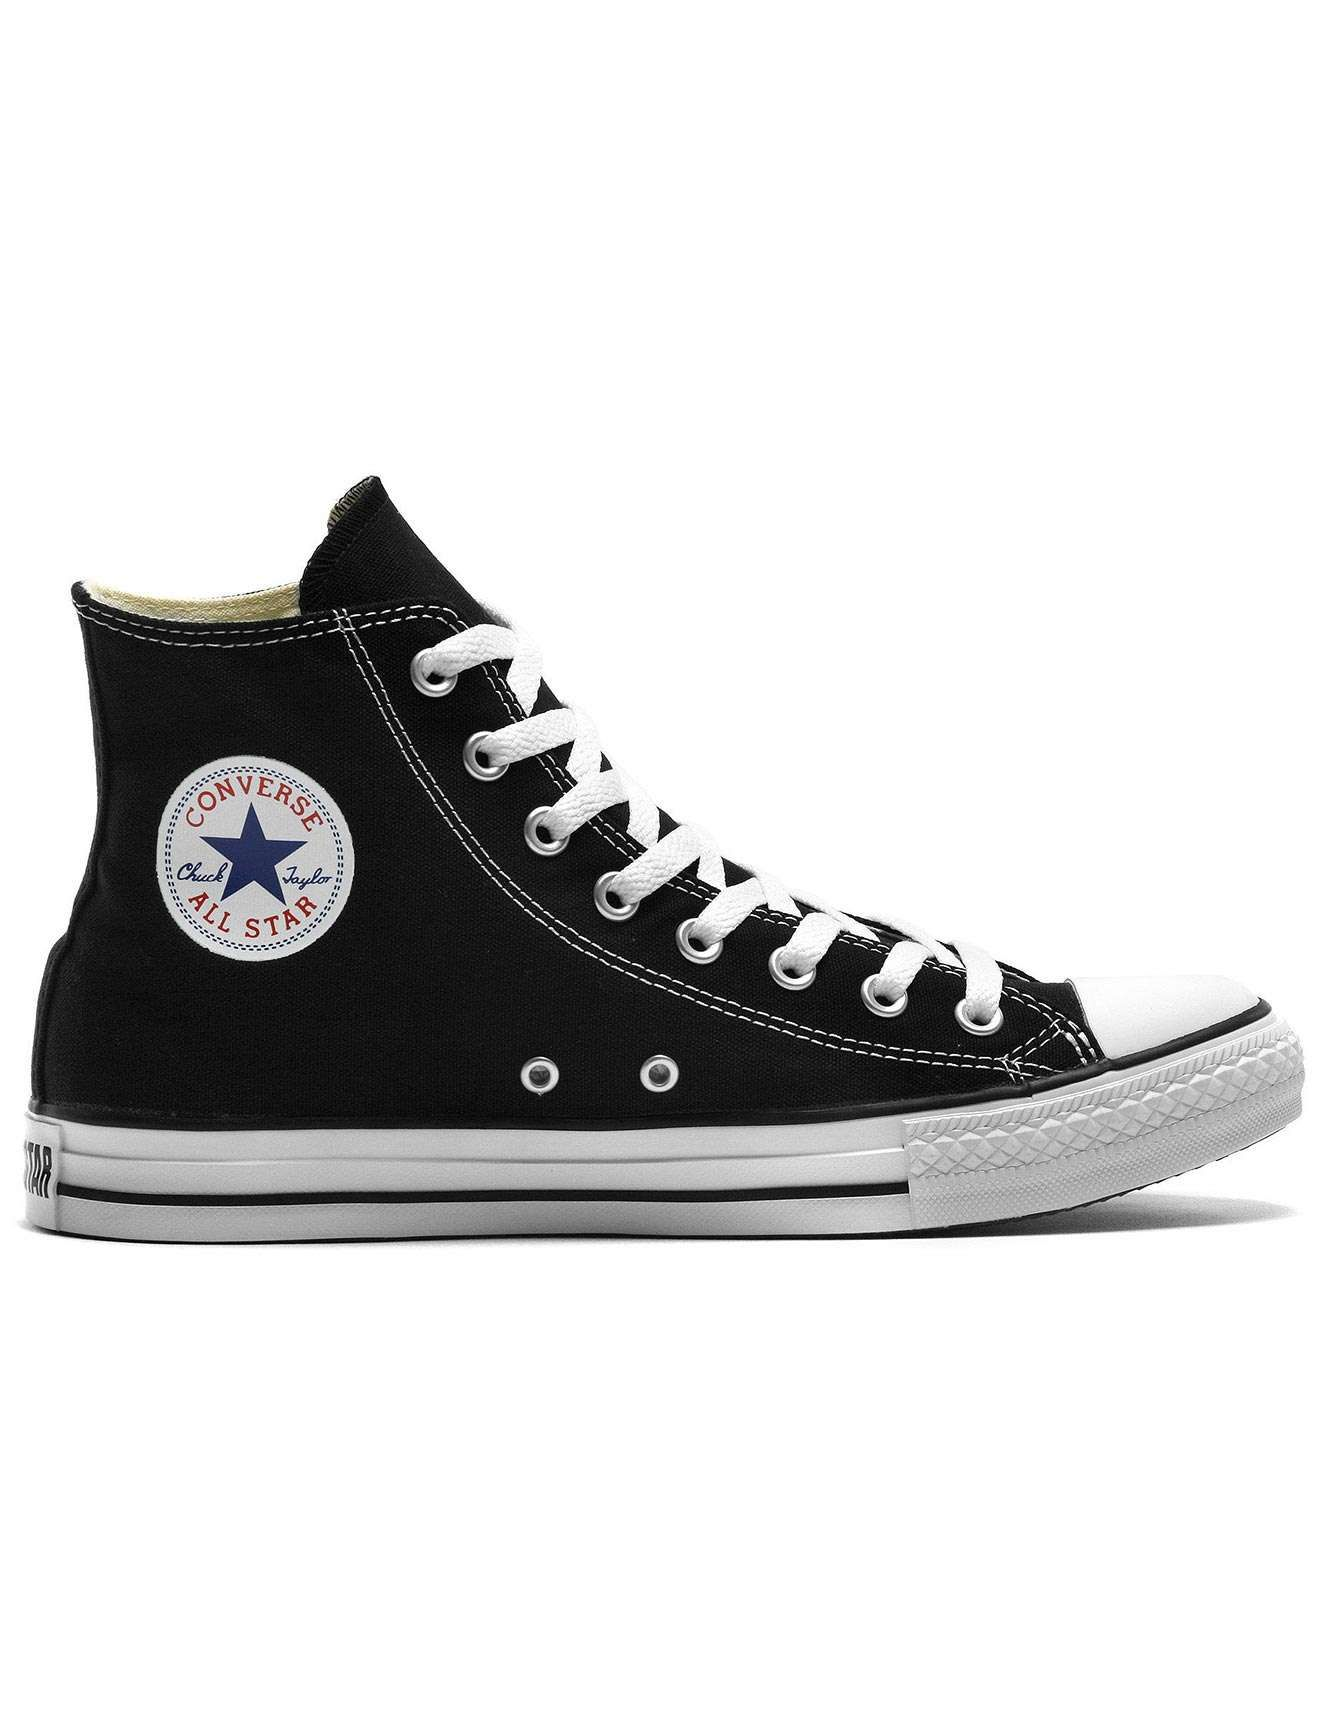 Chuck Taylor All Star High Profile Sneaker David Jones